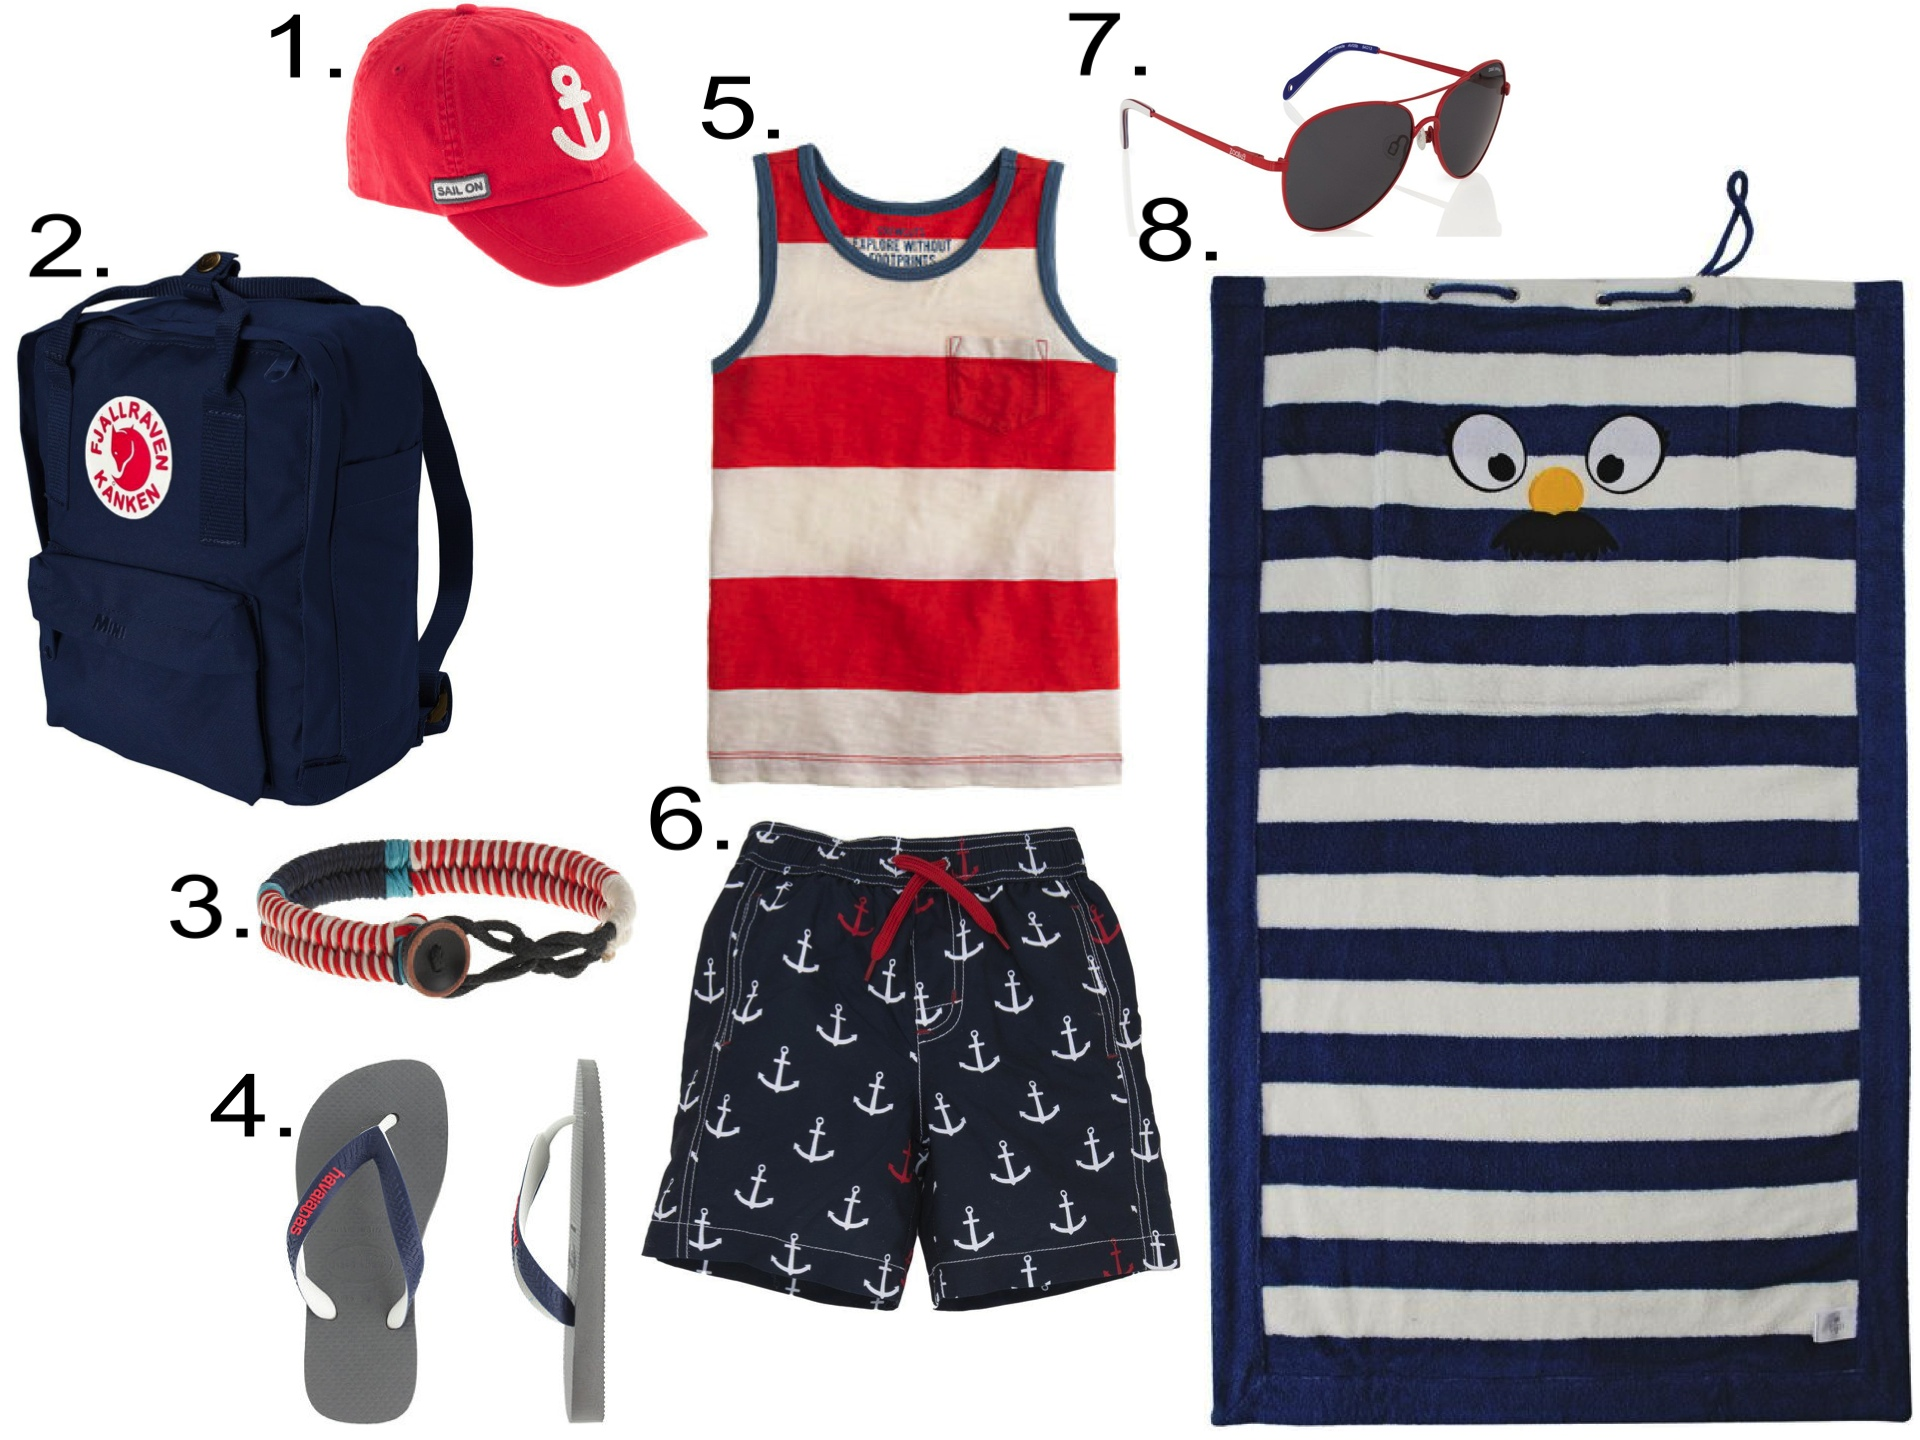 Kicking off Summer in Style... Boys...  1.  J.Crew KIDS' ANCHOR BASEBALL CAP    2.  Fjallraven Kanken Mini    3.  J.Crew KIDS' WAXED CORD BRACELET    4.  KIDS' HAVAIANAS® TOP MIX FLIP-FLOPS    5.  J.Crew BOYS' POCKET TANK IN WIDE STRIPE    6.  Hatley Anchor Swim Trunks    7.  Zoobug Sunglasses Red Aviator Sunglasses    8.  Stella McCartney Sunny Towel